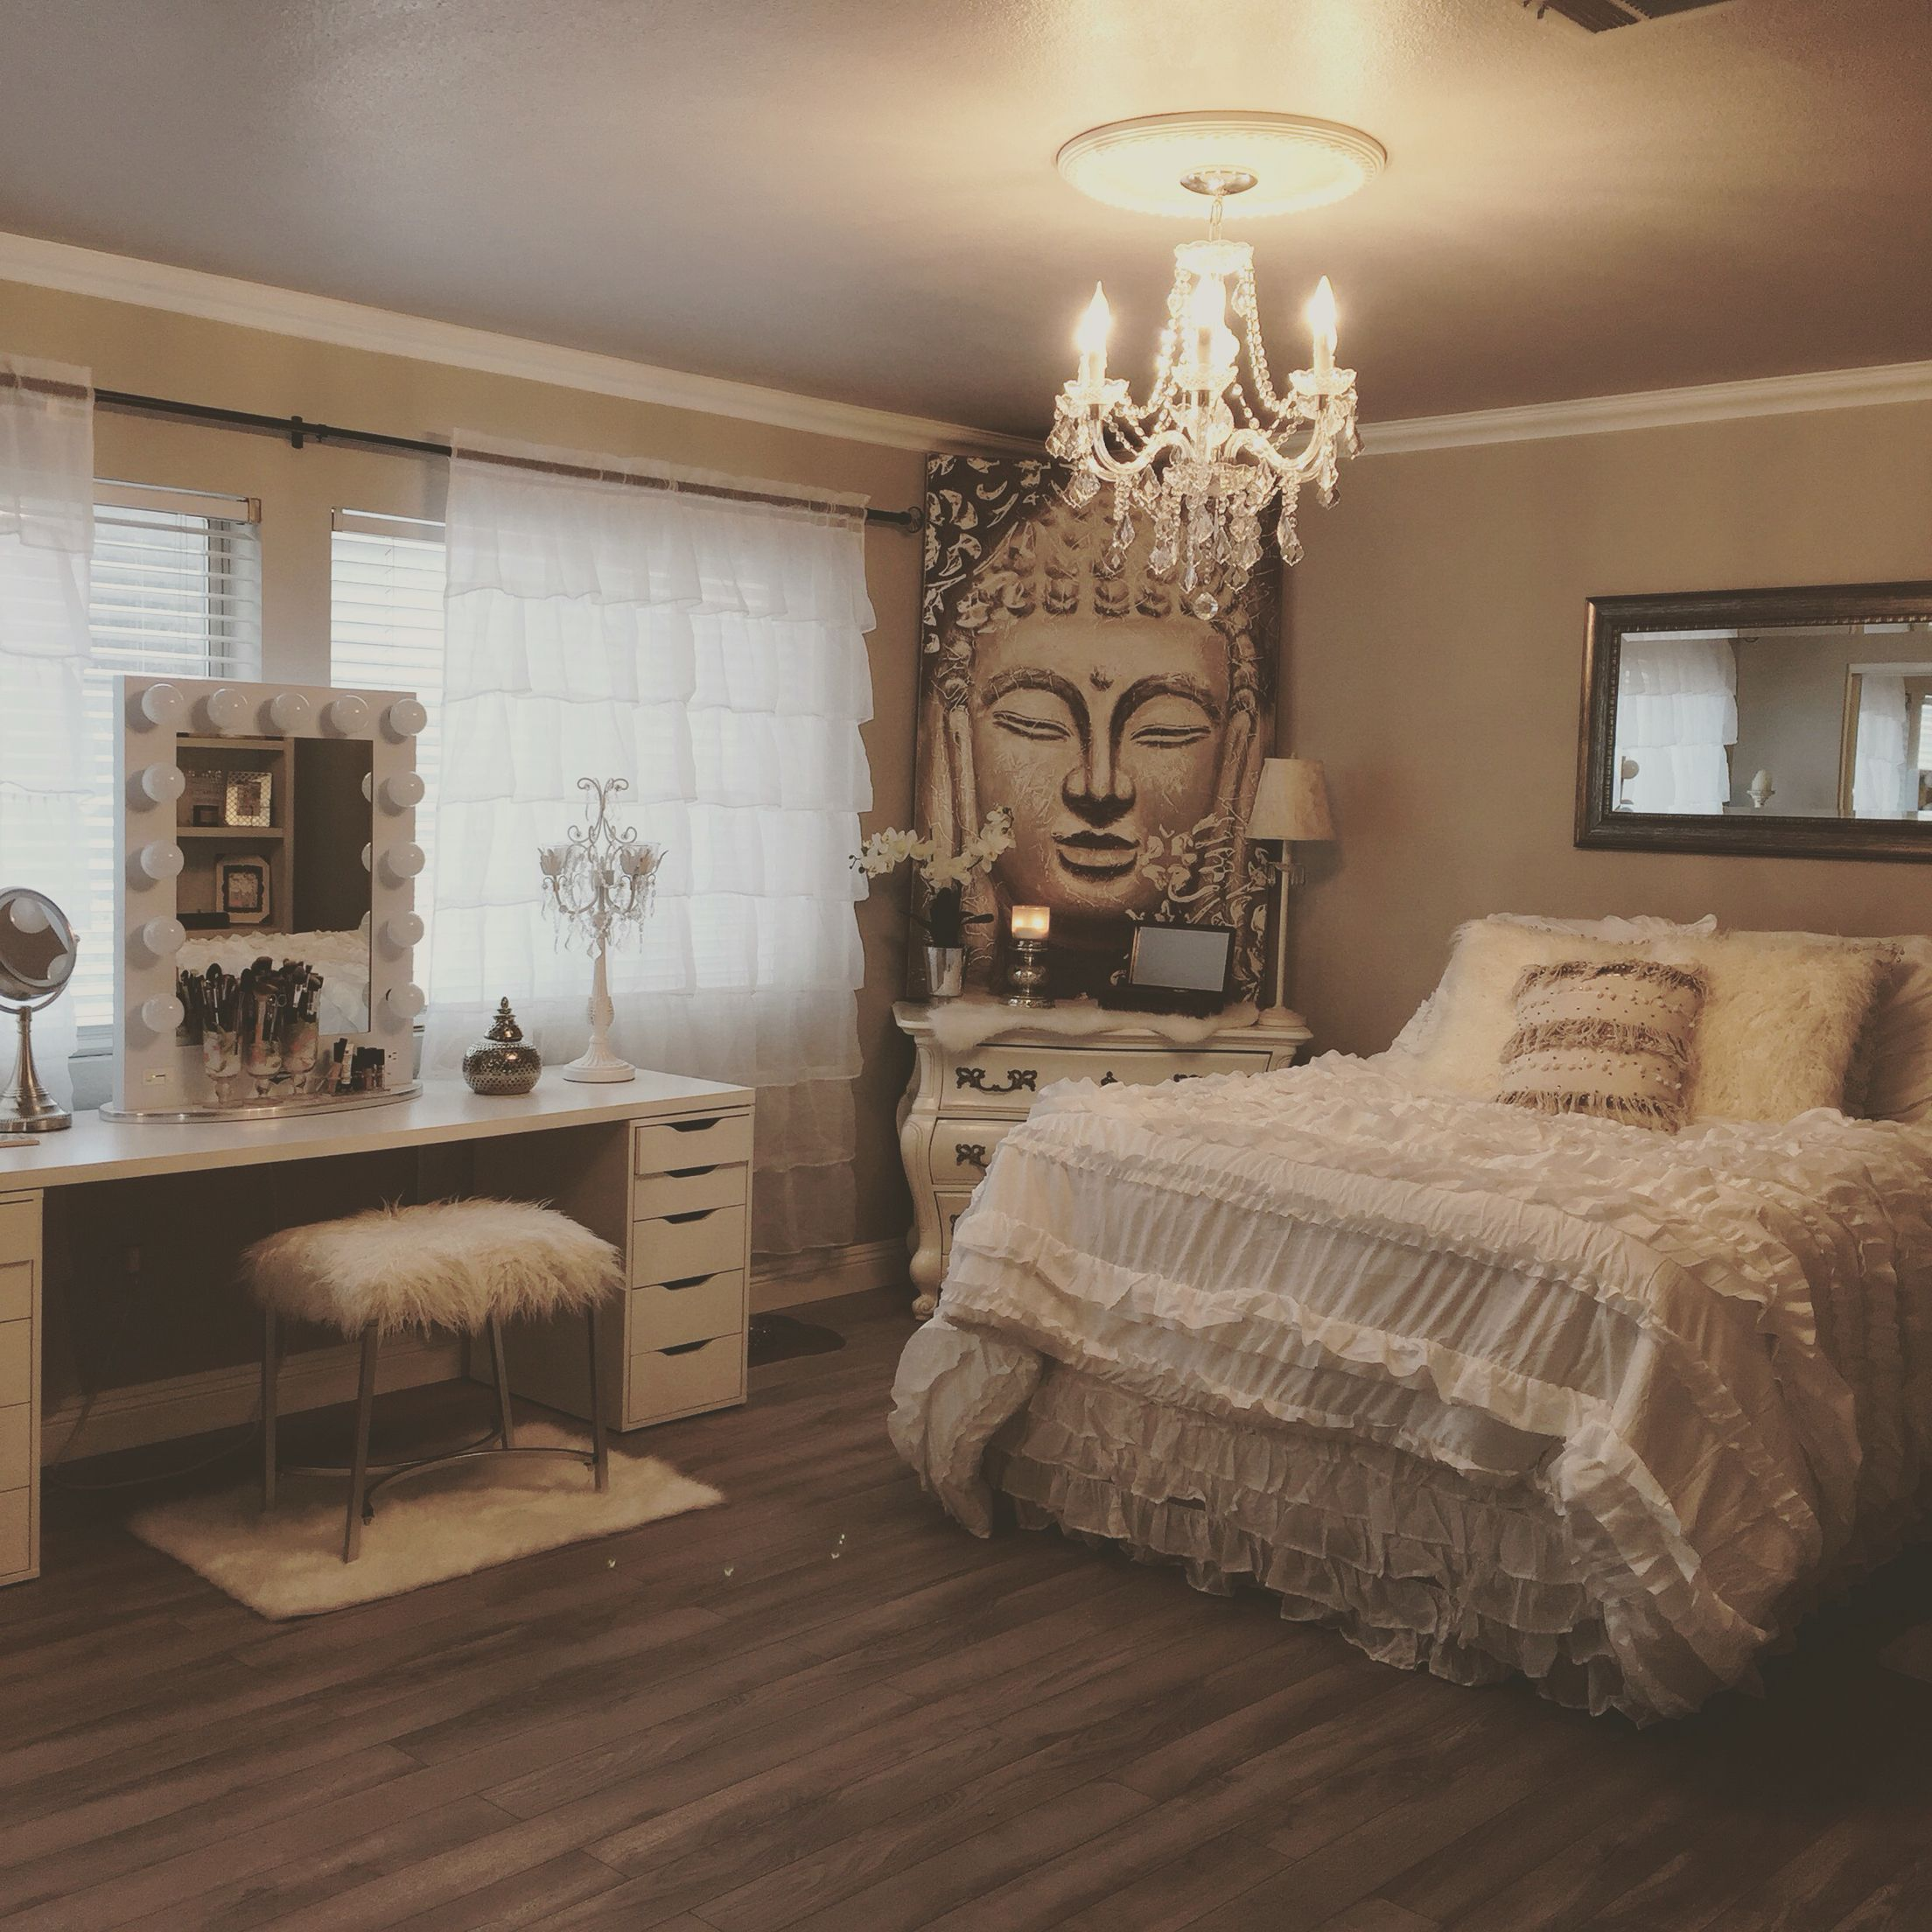 Shabby chic meets zen glam my new bedroom pinterest for Zen room accessories